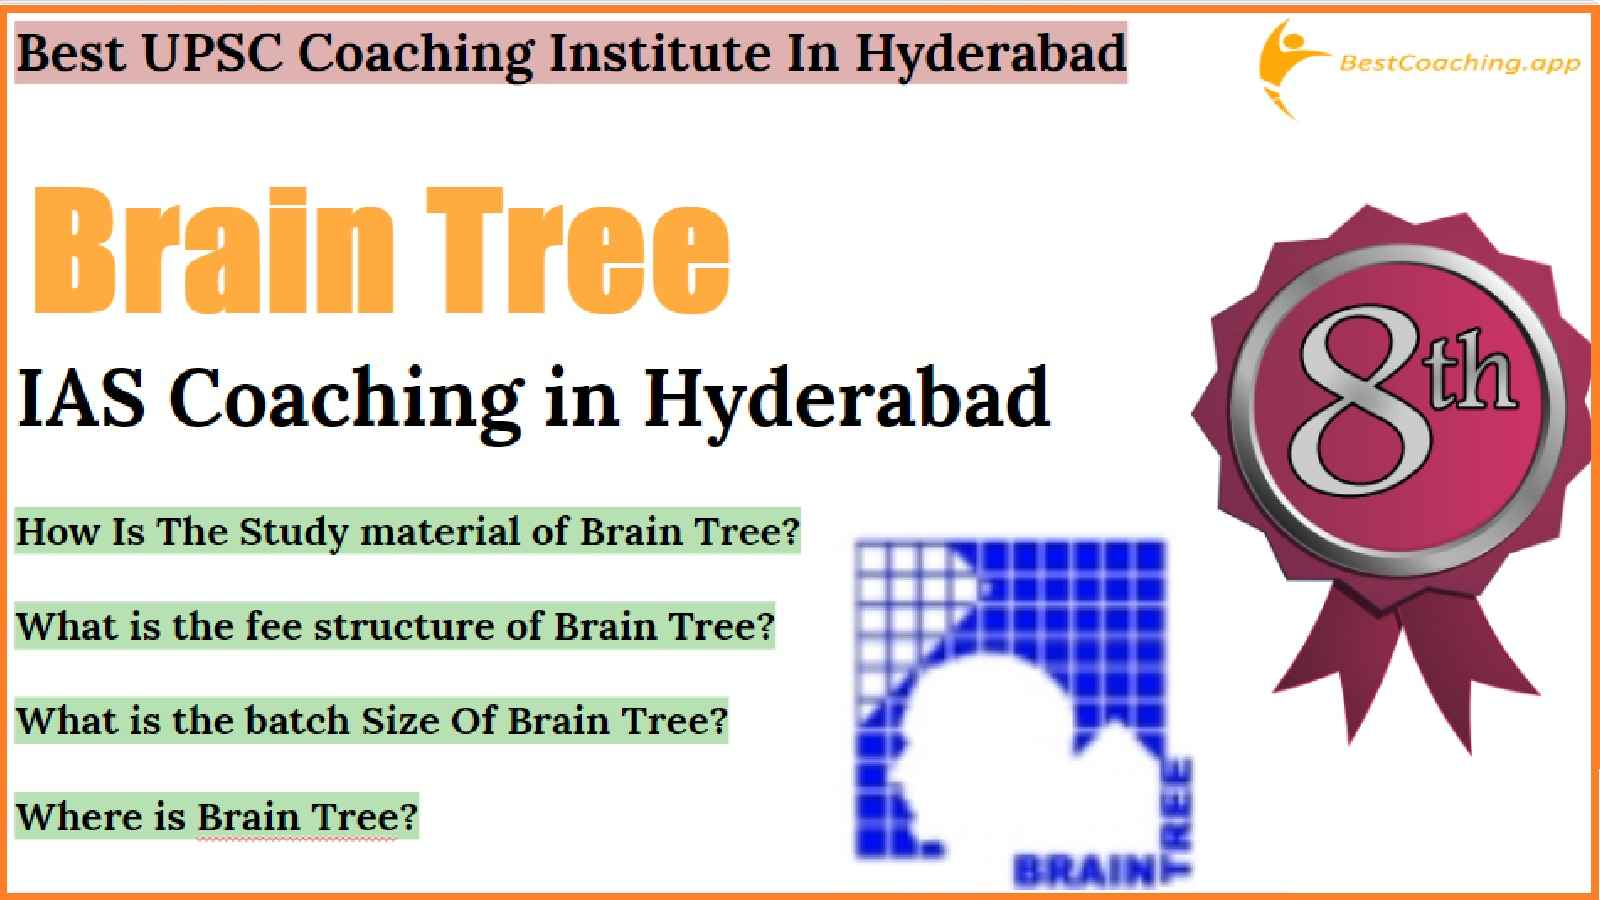 IAS Coaching In Hyderabad